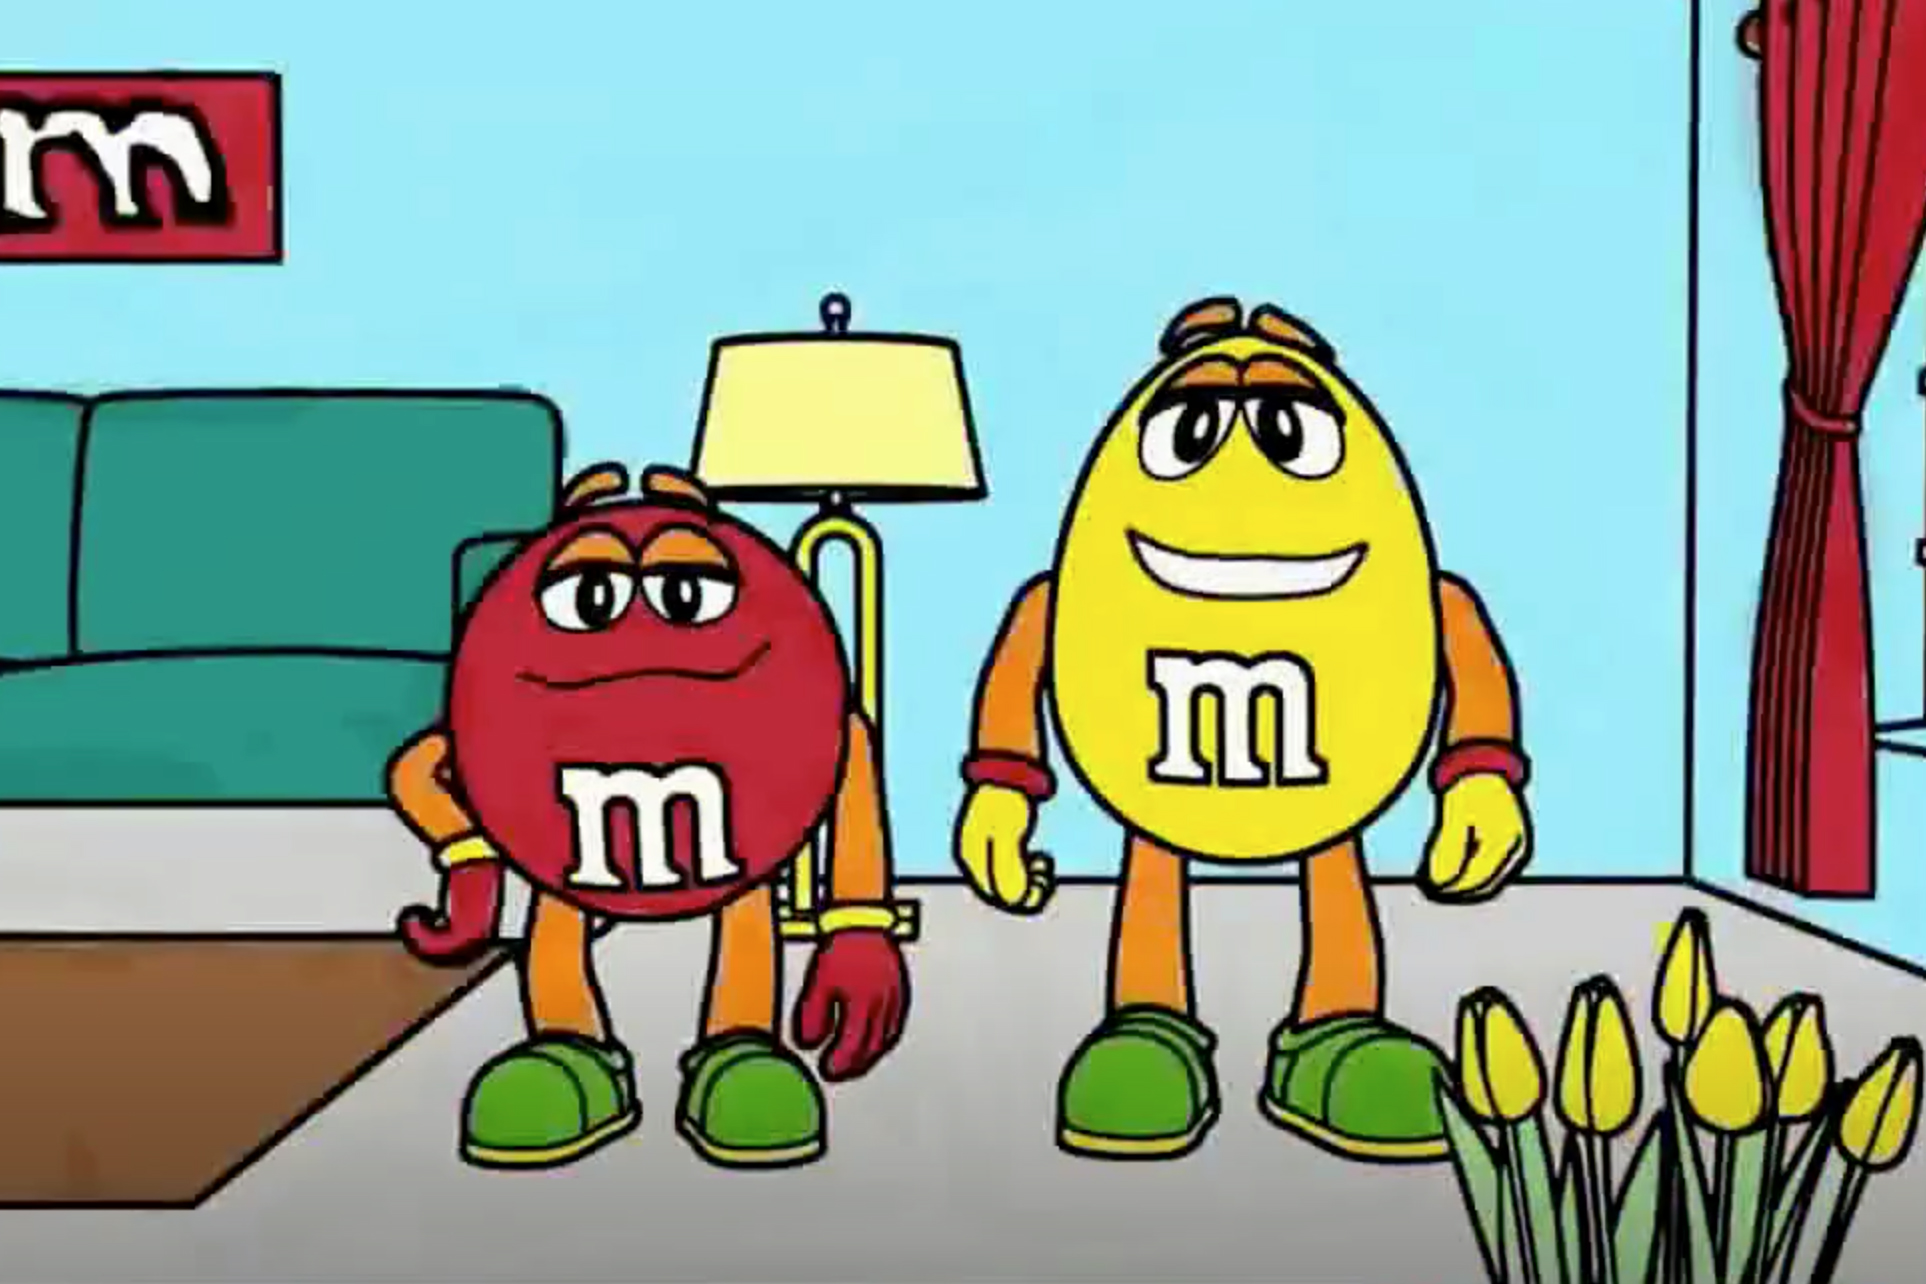 Watch the newest commercials on TV from PlayStation, M&M's, Arby's and more